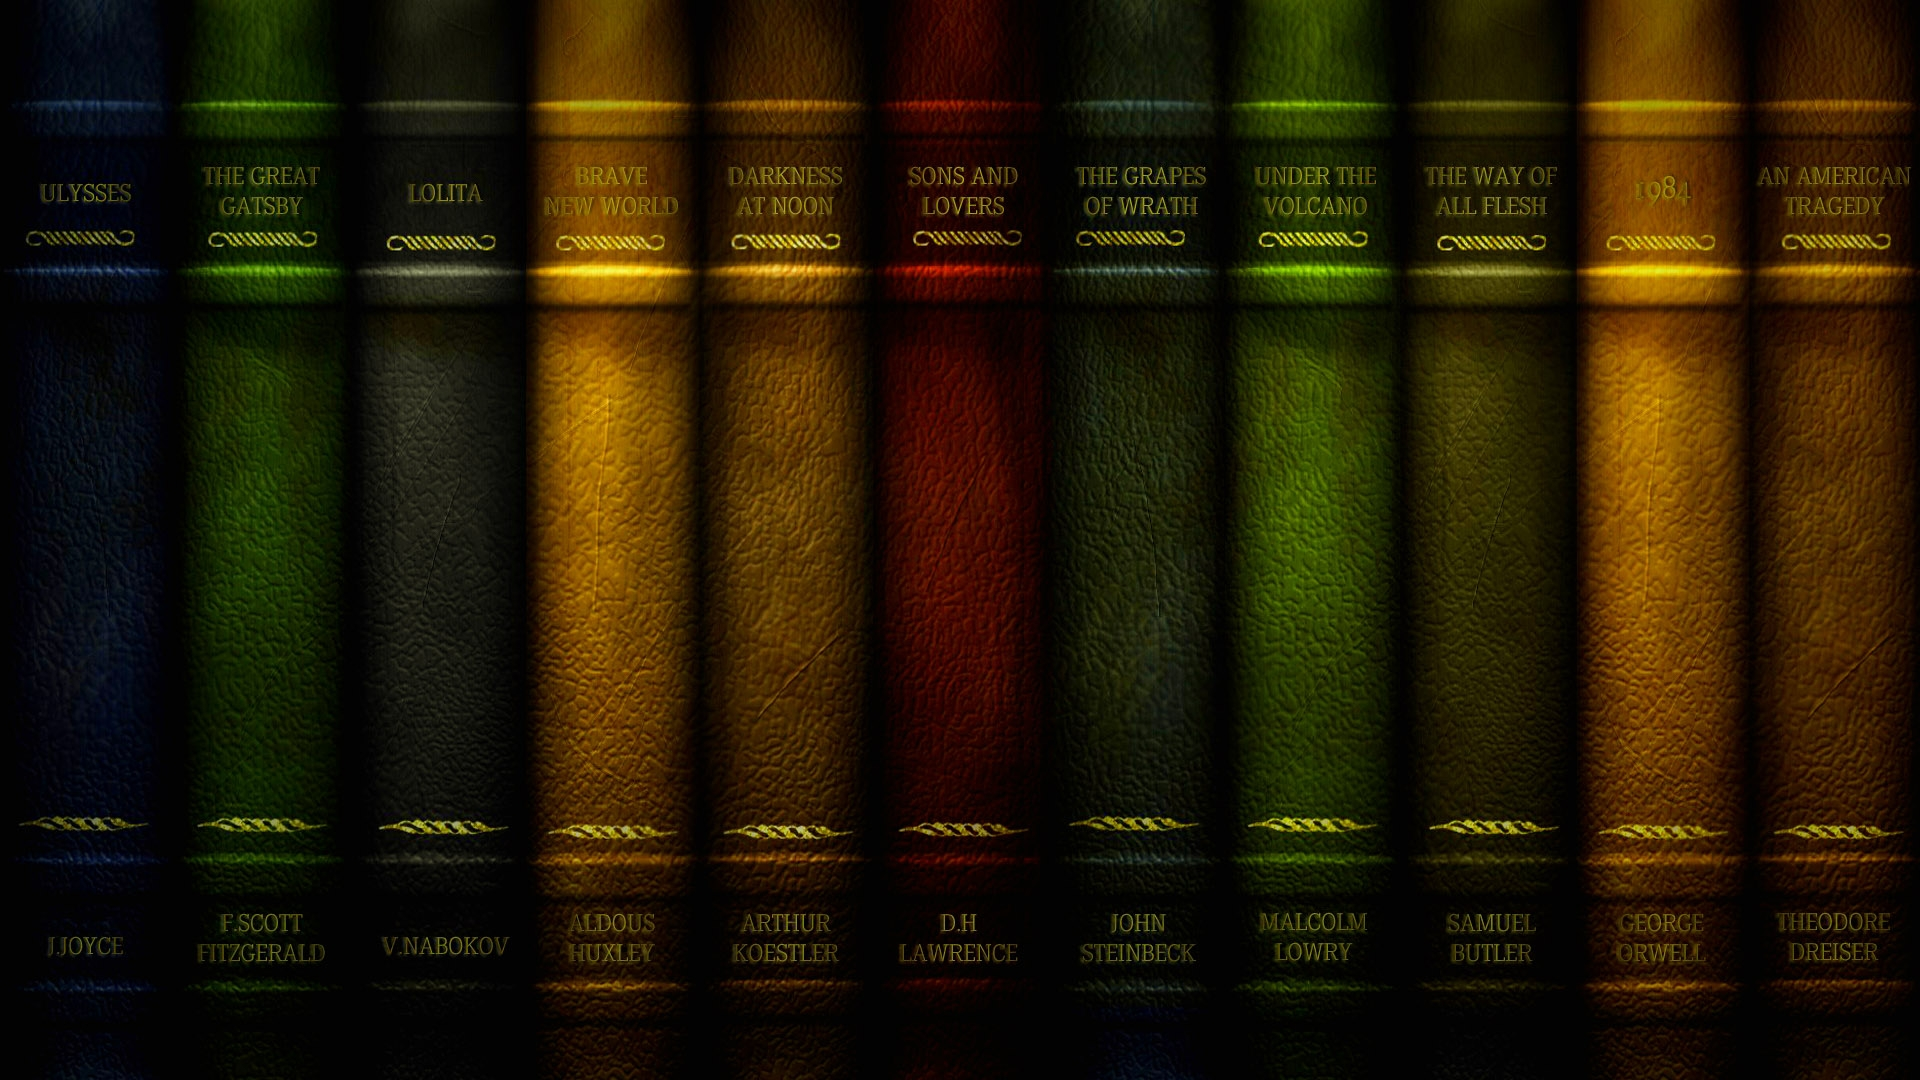 Books Wallpaper Hd